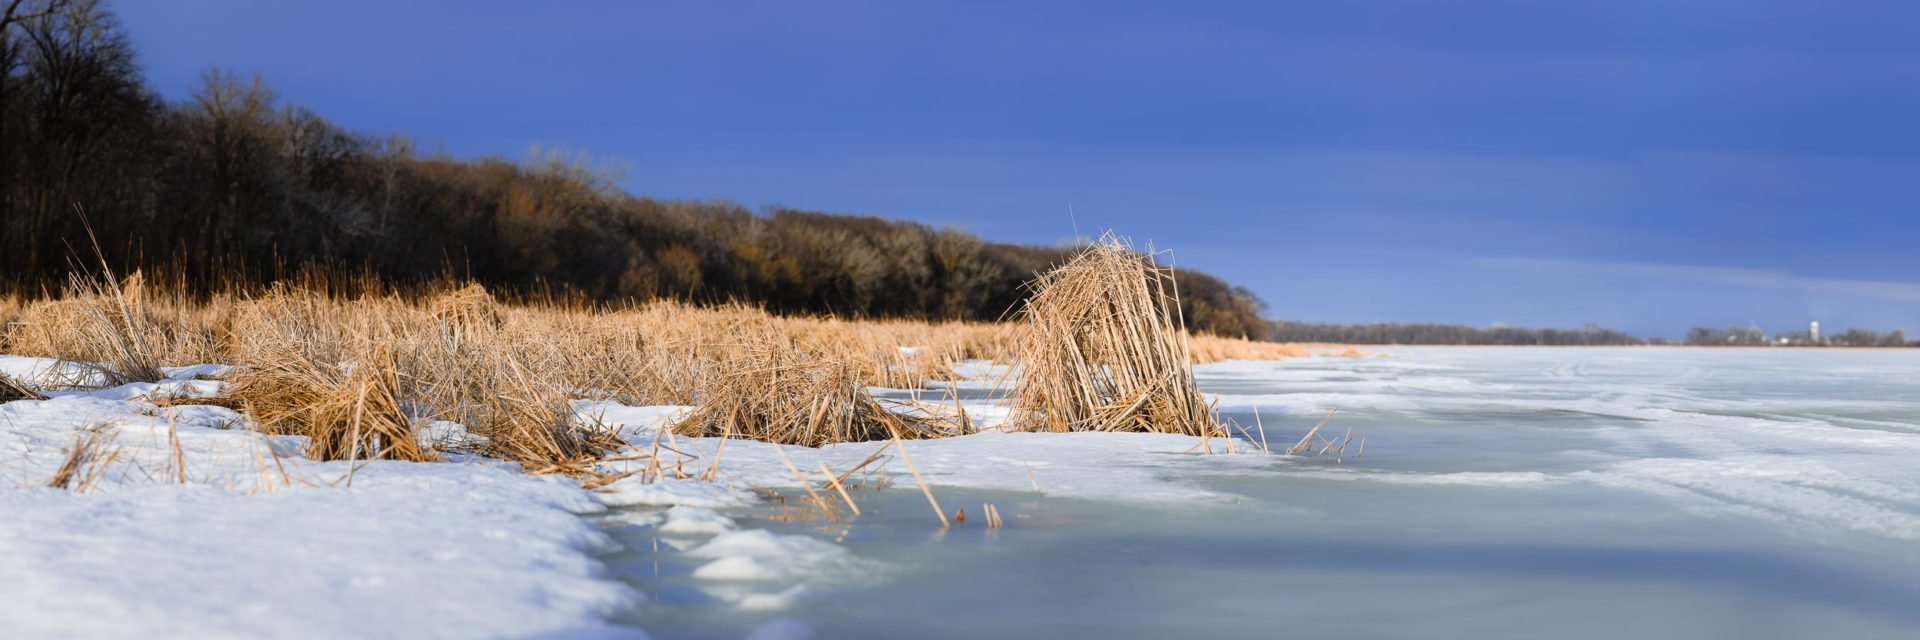 Reeds and cattails make for a unique transition from shore to open water at Rice Lake State Park in Minnesota